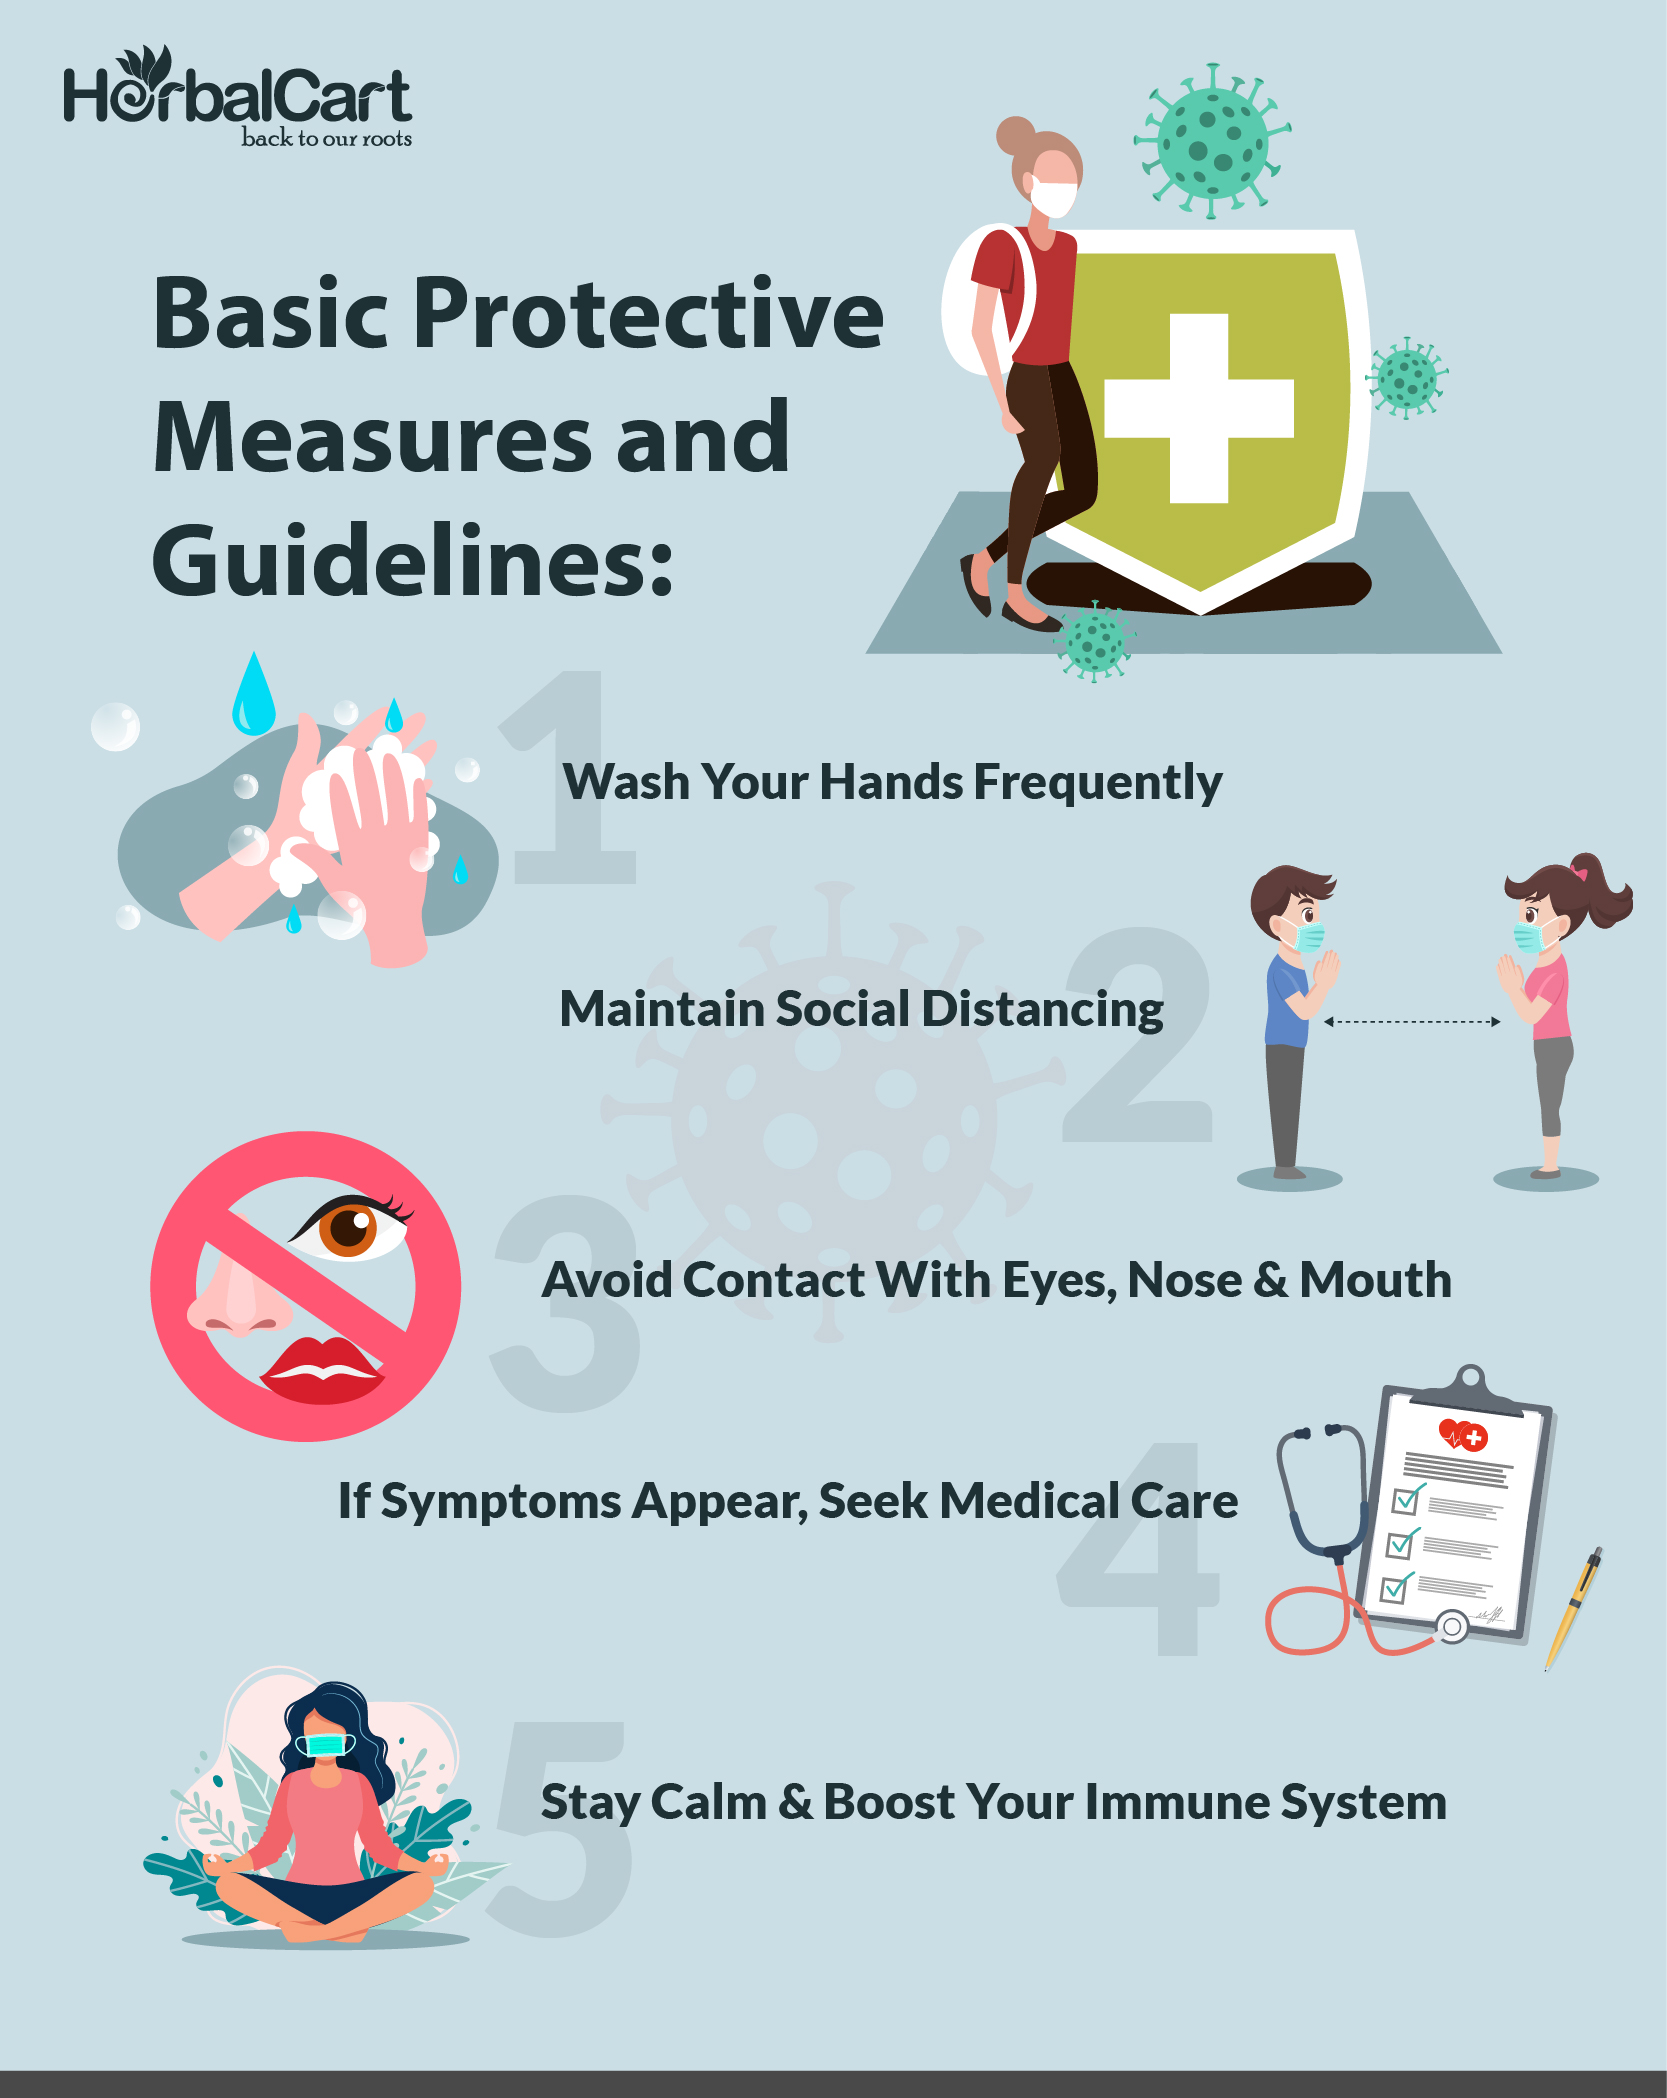 Basic Protective Measures and Guidelines